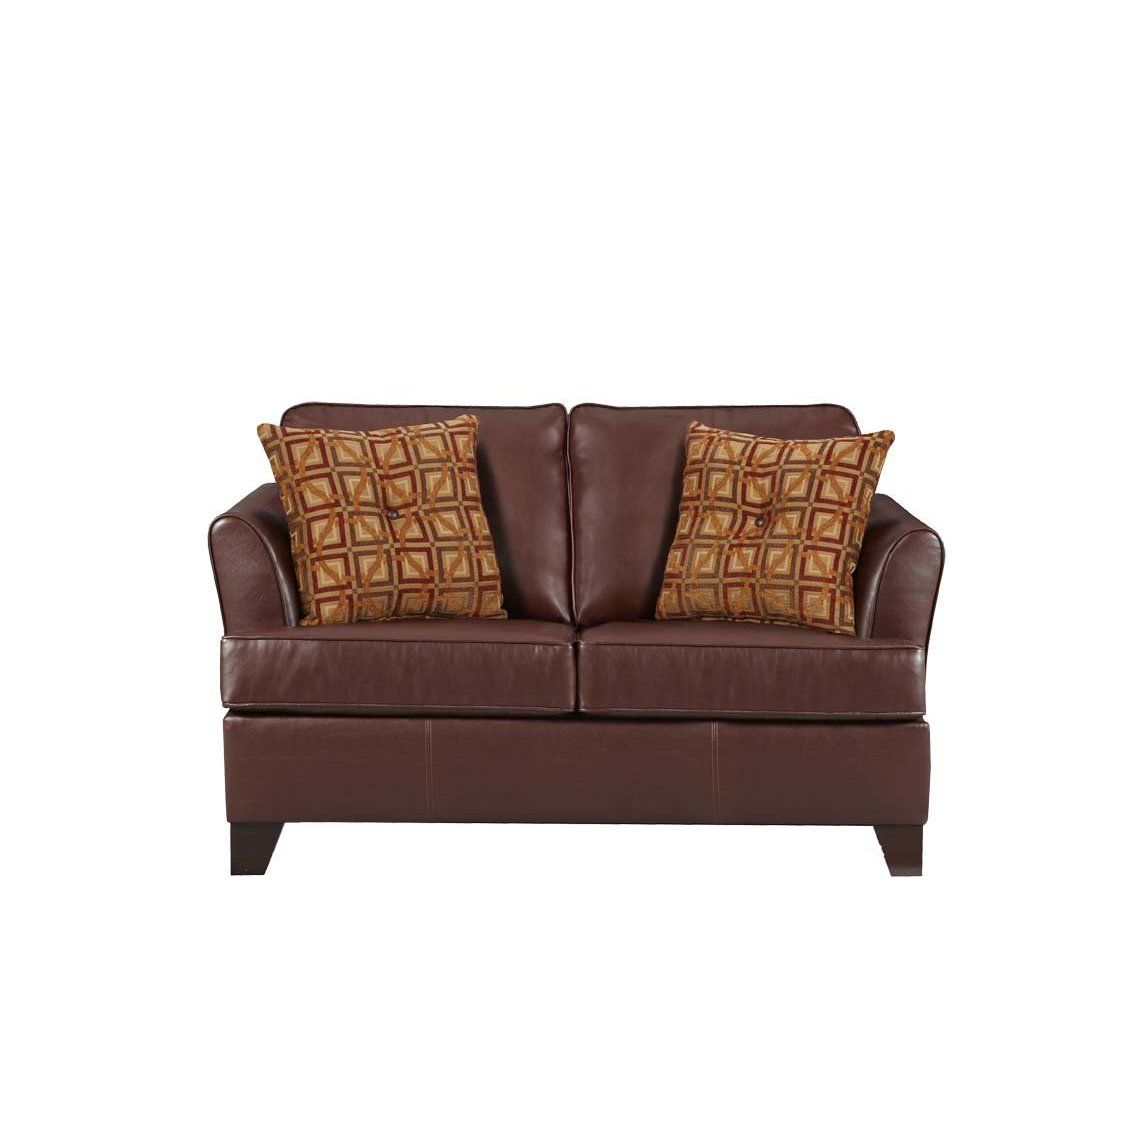 Best Umber Brown Soft Leather Twin Sleeper Sofa By Simmons Oh 640 x 480